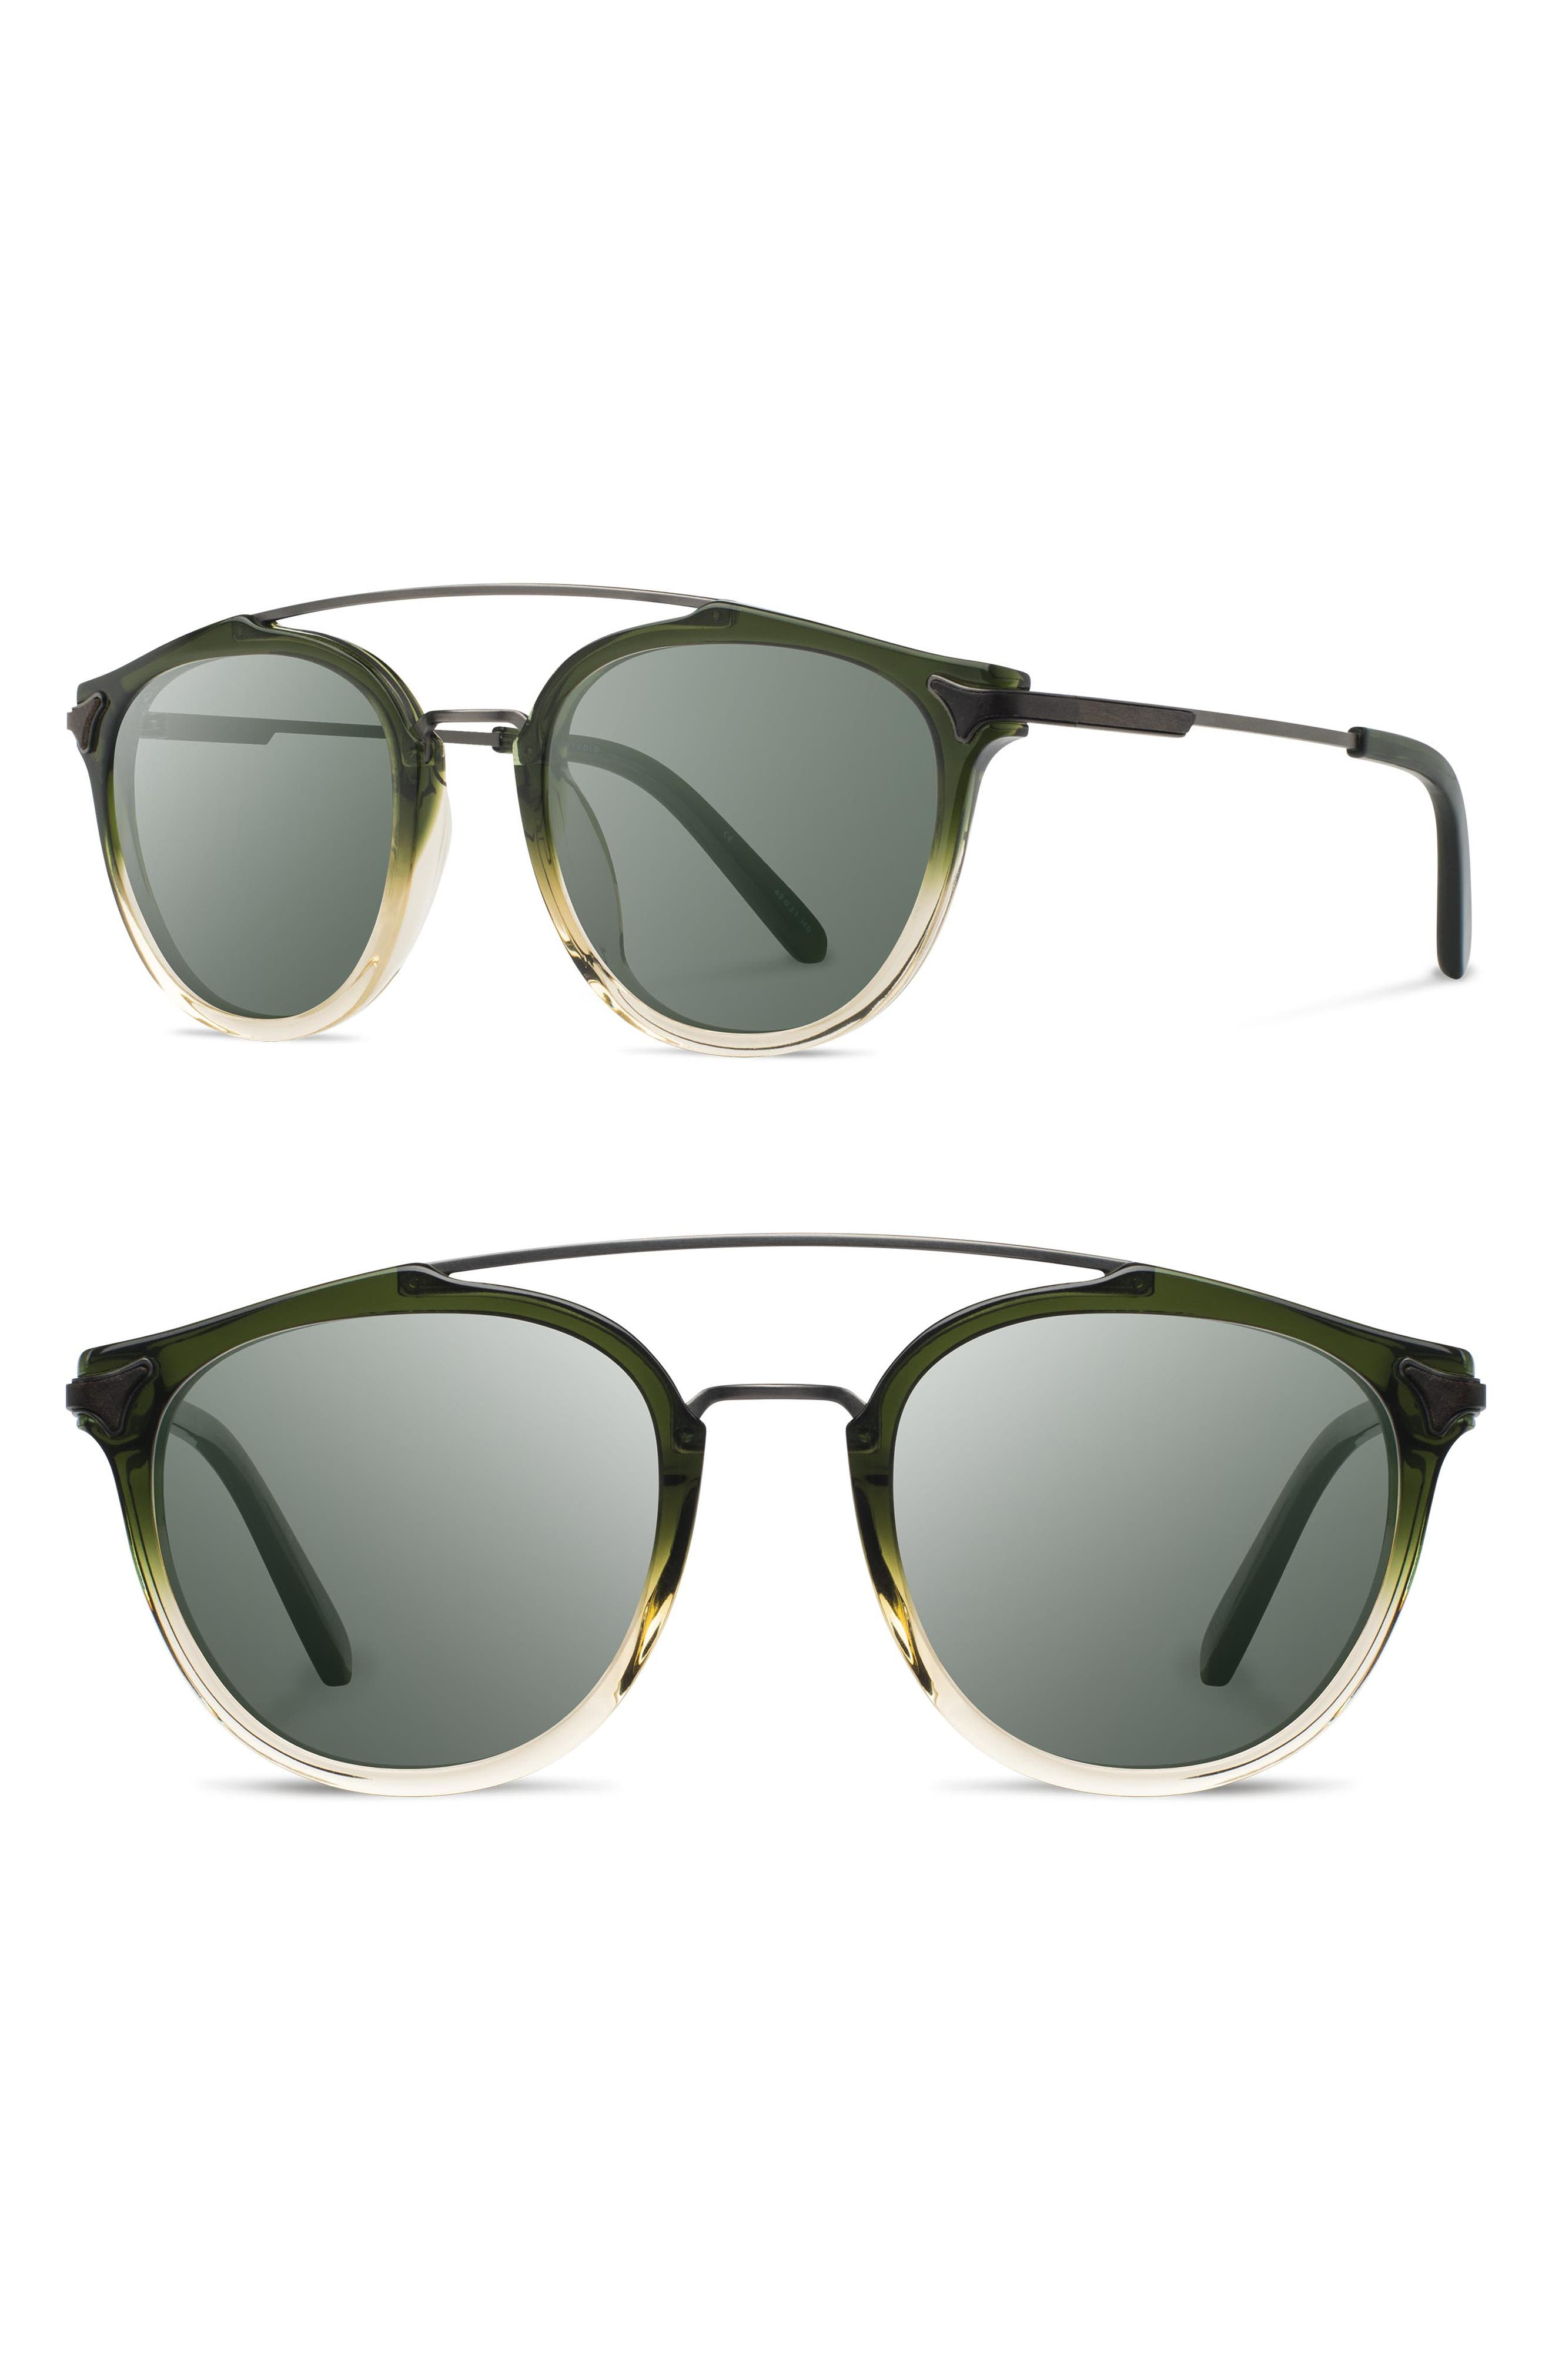 Shwood Kinsrow 4m Polarized Round Sunglasses - Mojito/ G15